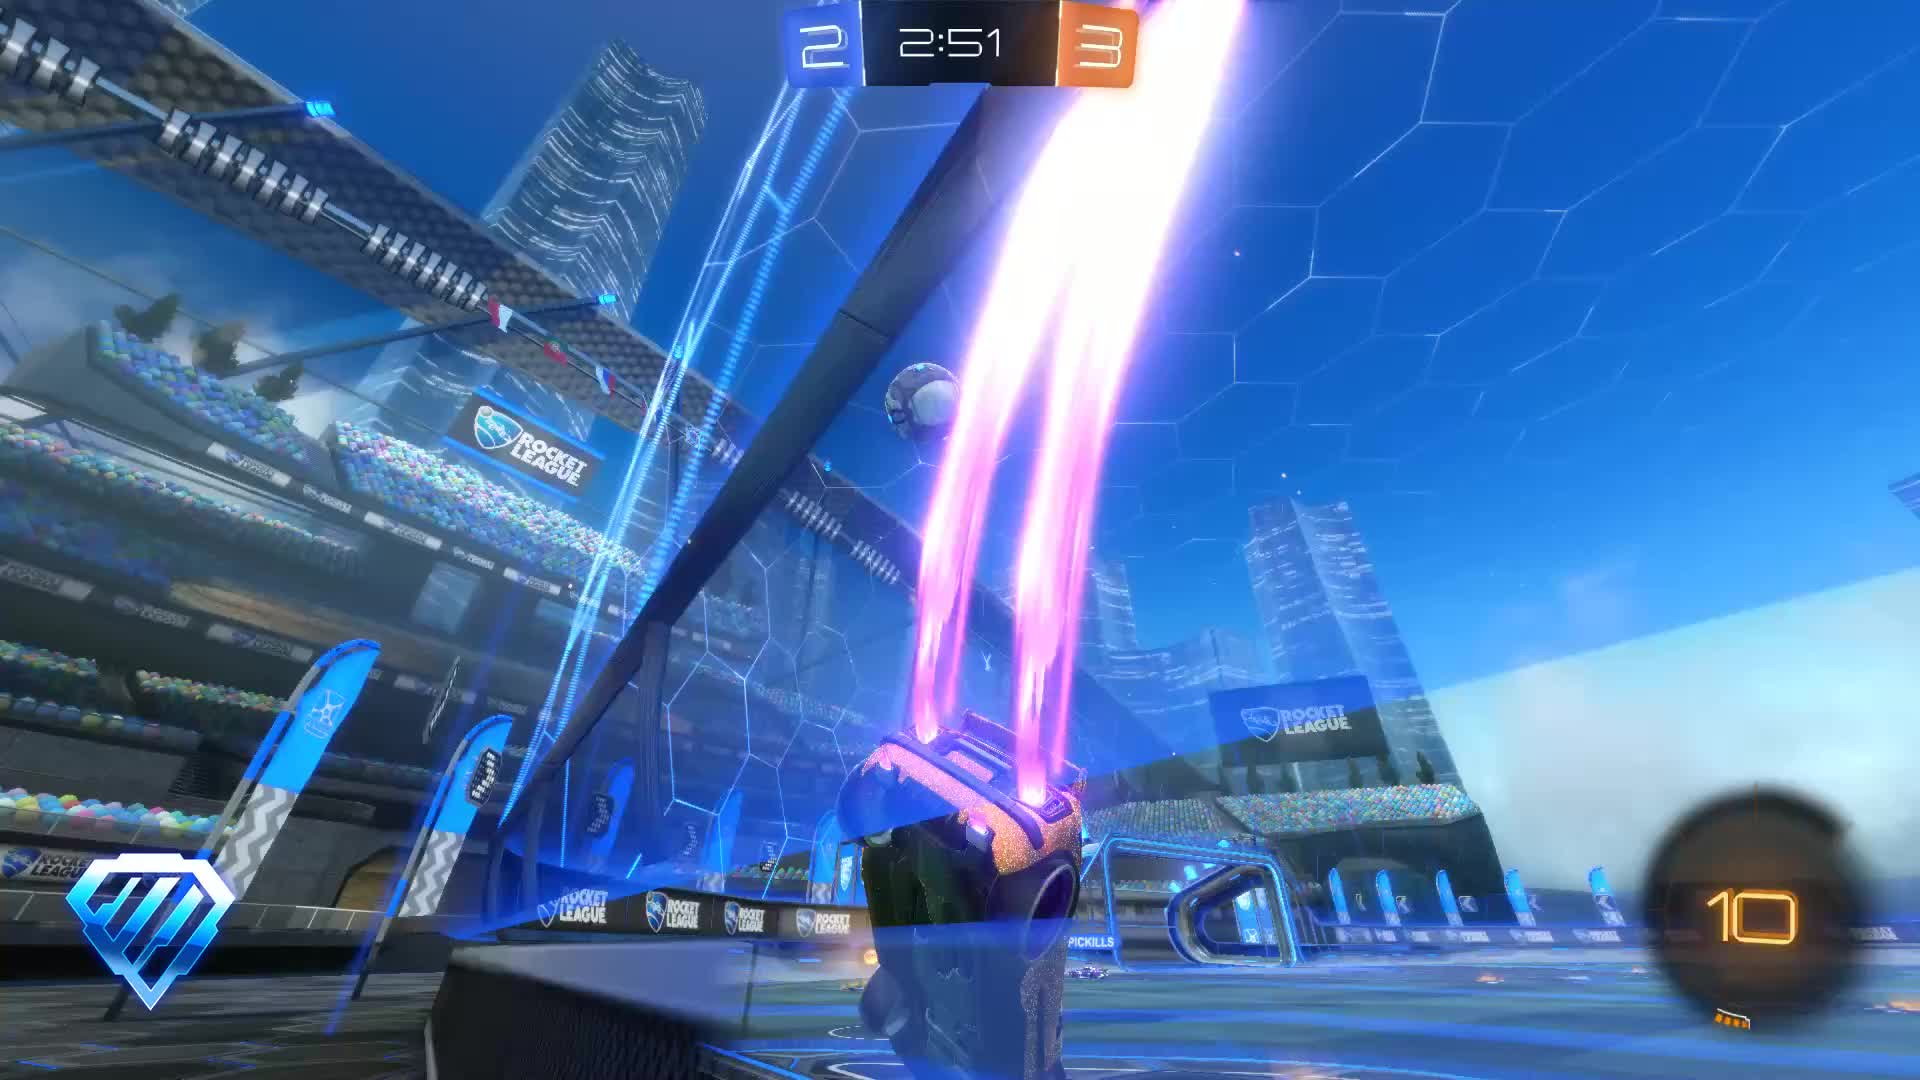 Gif Your Game, GifYourGame, Goal, Rocket League, RocketLeague, TinnieSinker, Goal 6: TinnieSinker GIFs